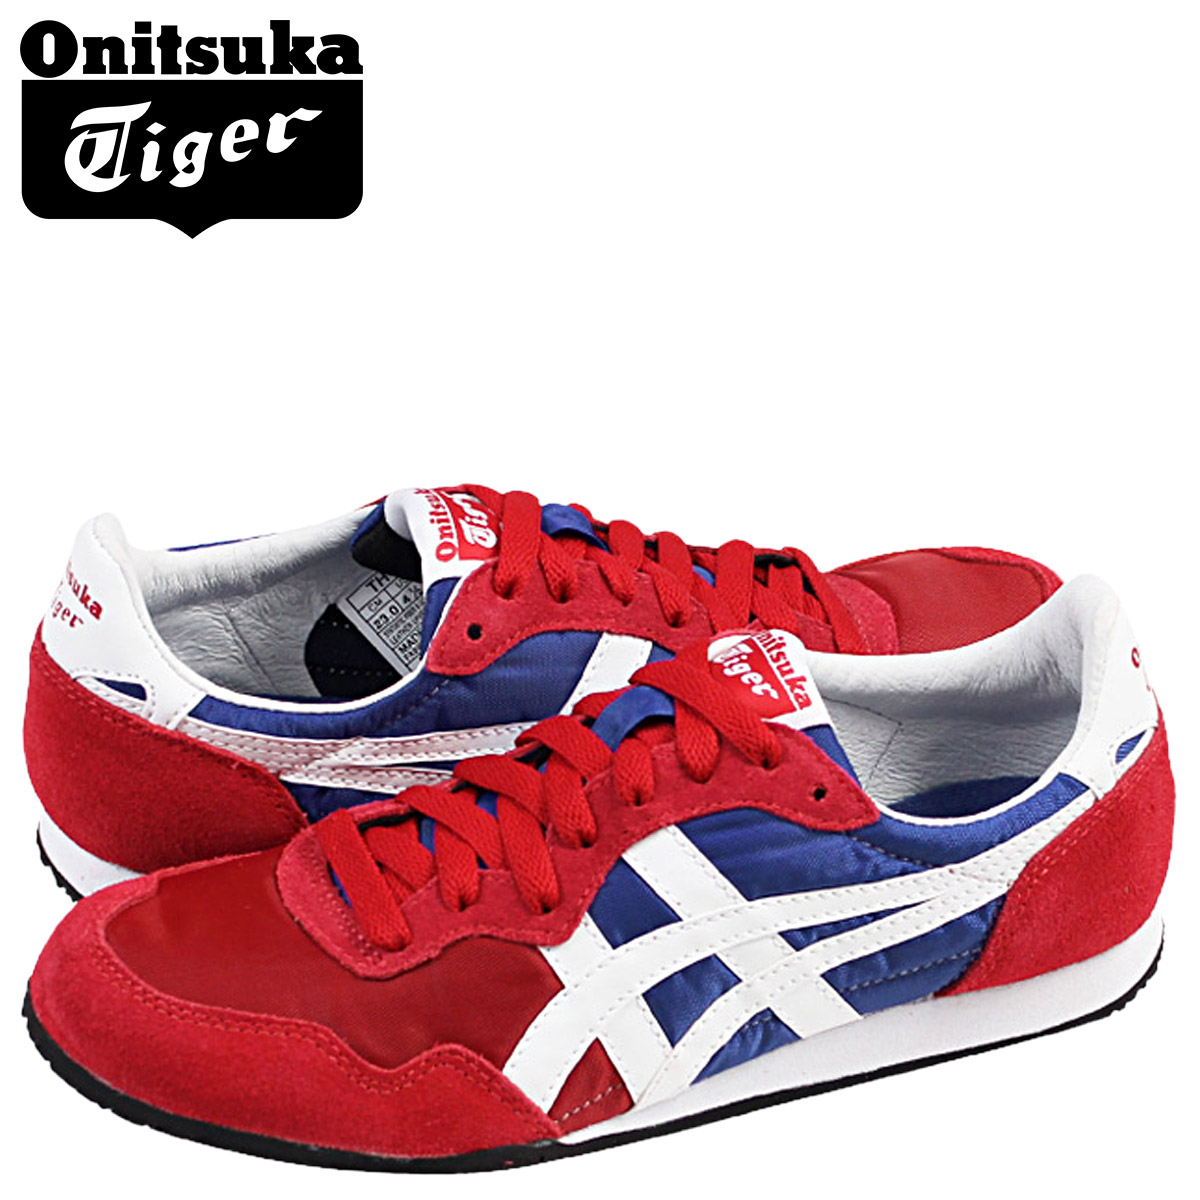 64f96d3e8dd1  SOLD OUT  ONITSUKA Tiger ASICs Onitsuka Tiger asics women s SERRANO  sneakers Serrano suede   nylon 2014 new TH 109L-2201 red suede  regular